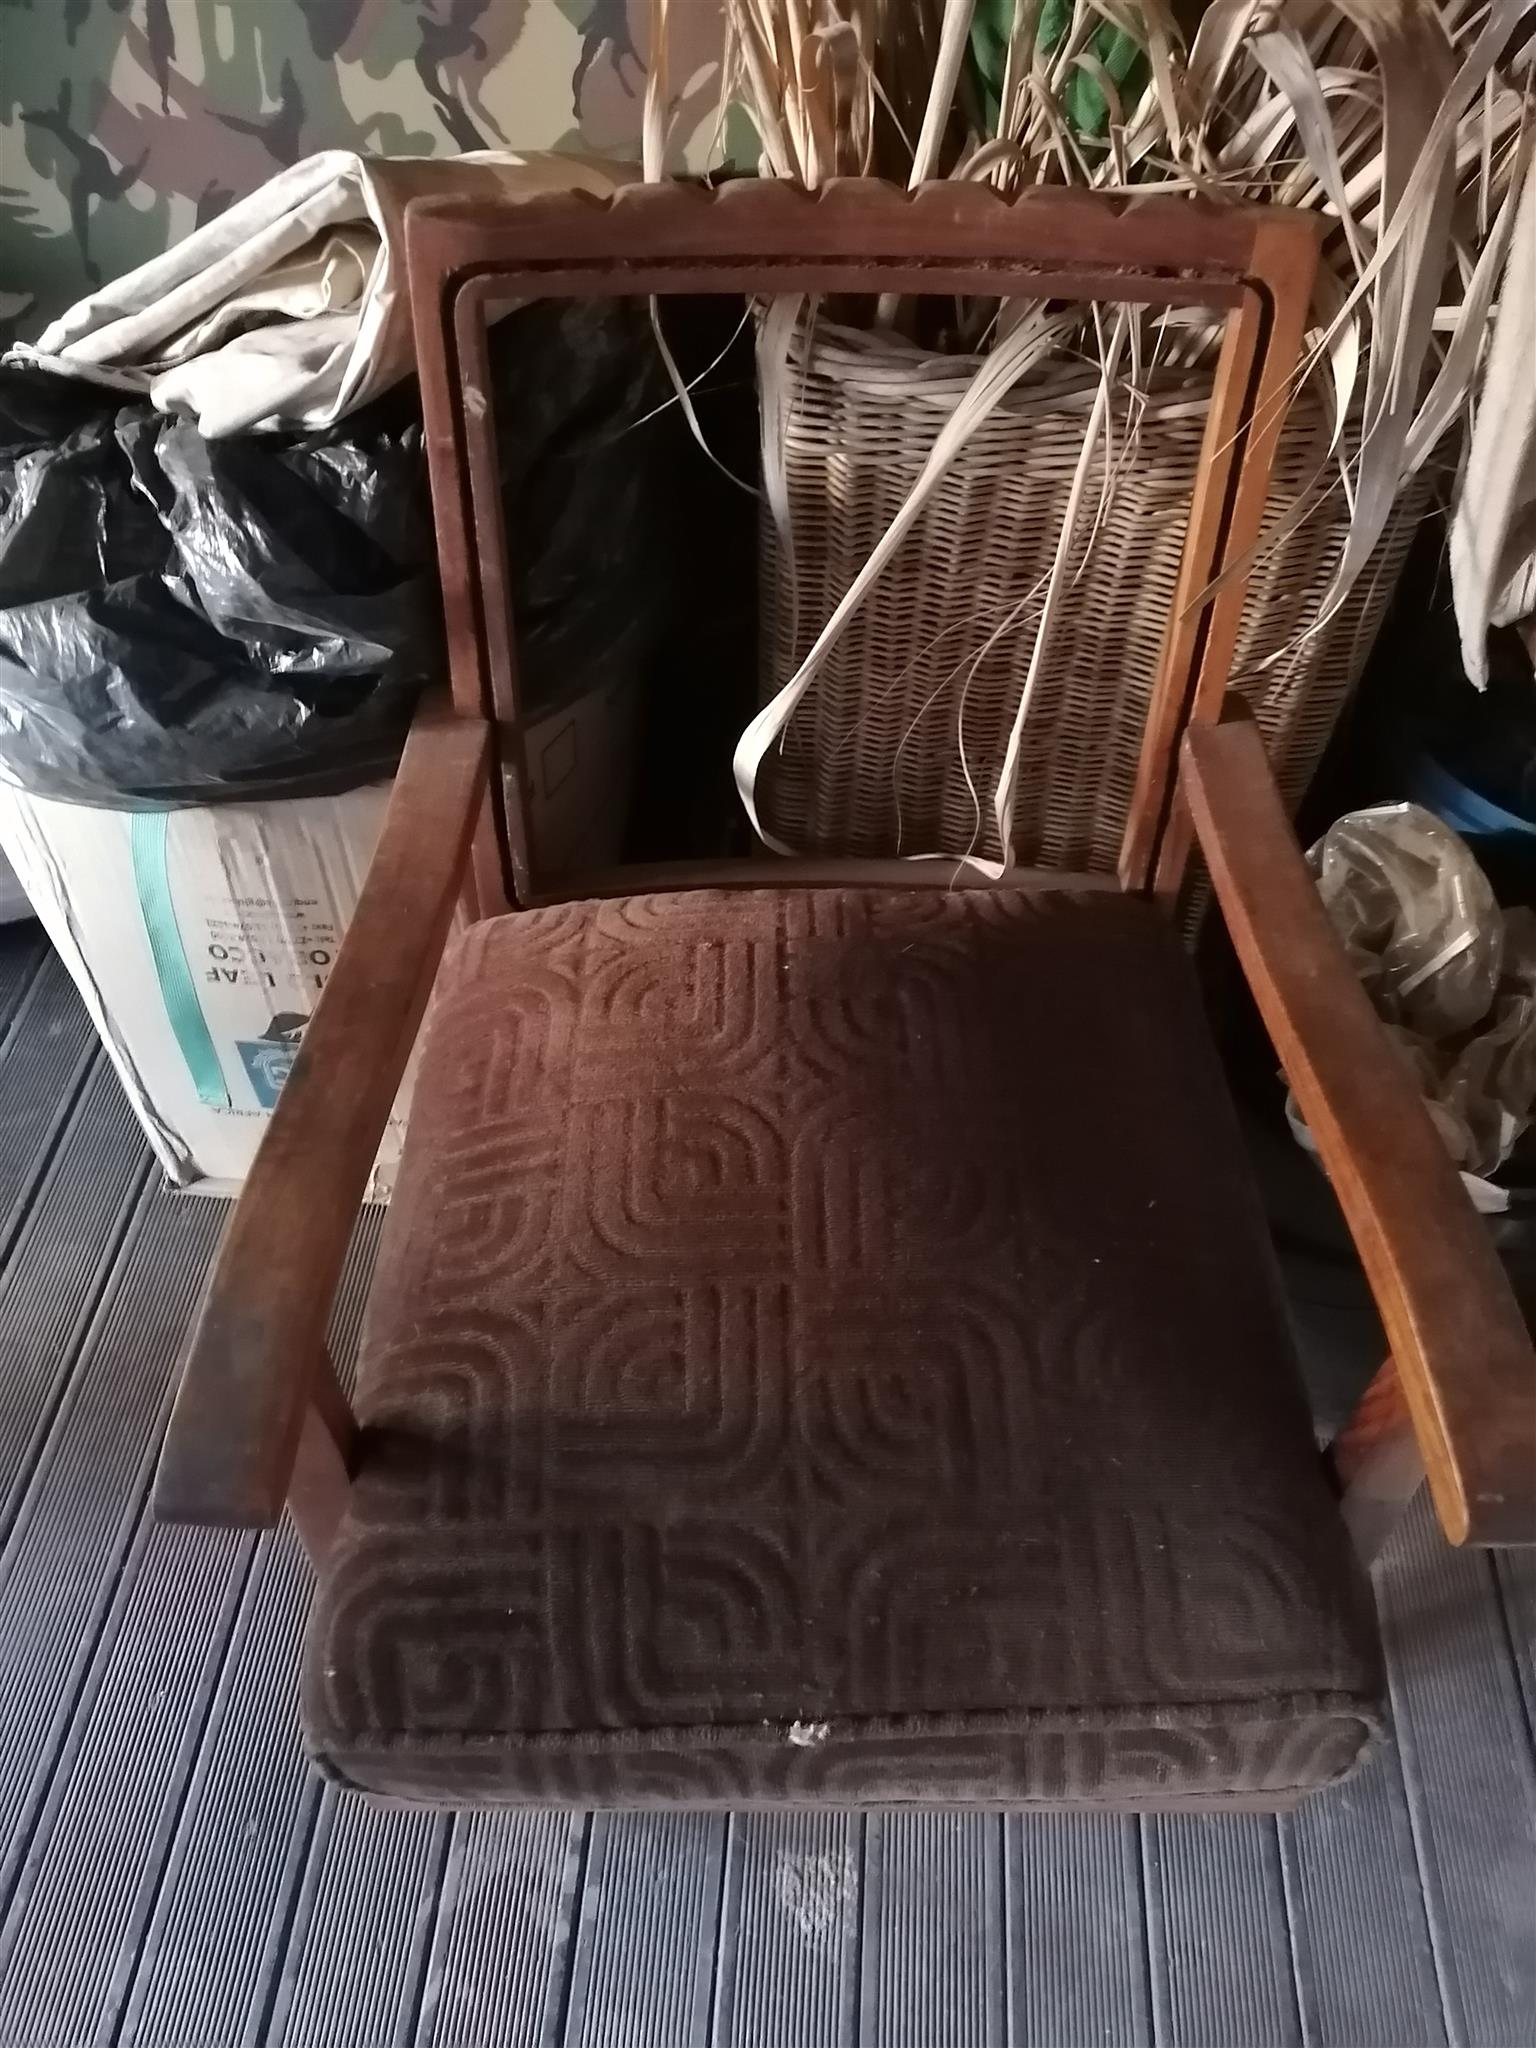 ANTIQUE PATIO or DECK / WOODEN CHAIRS